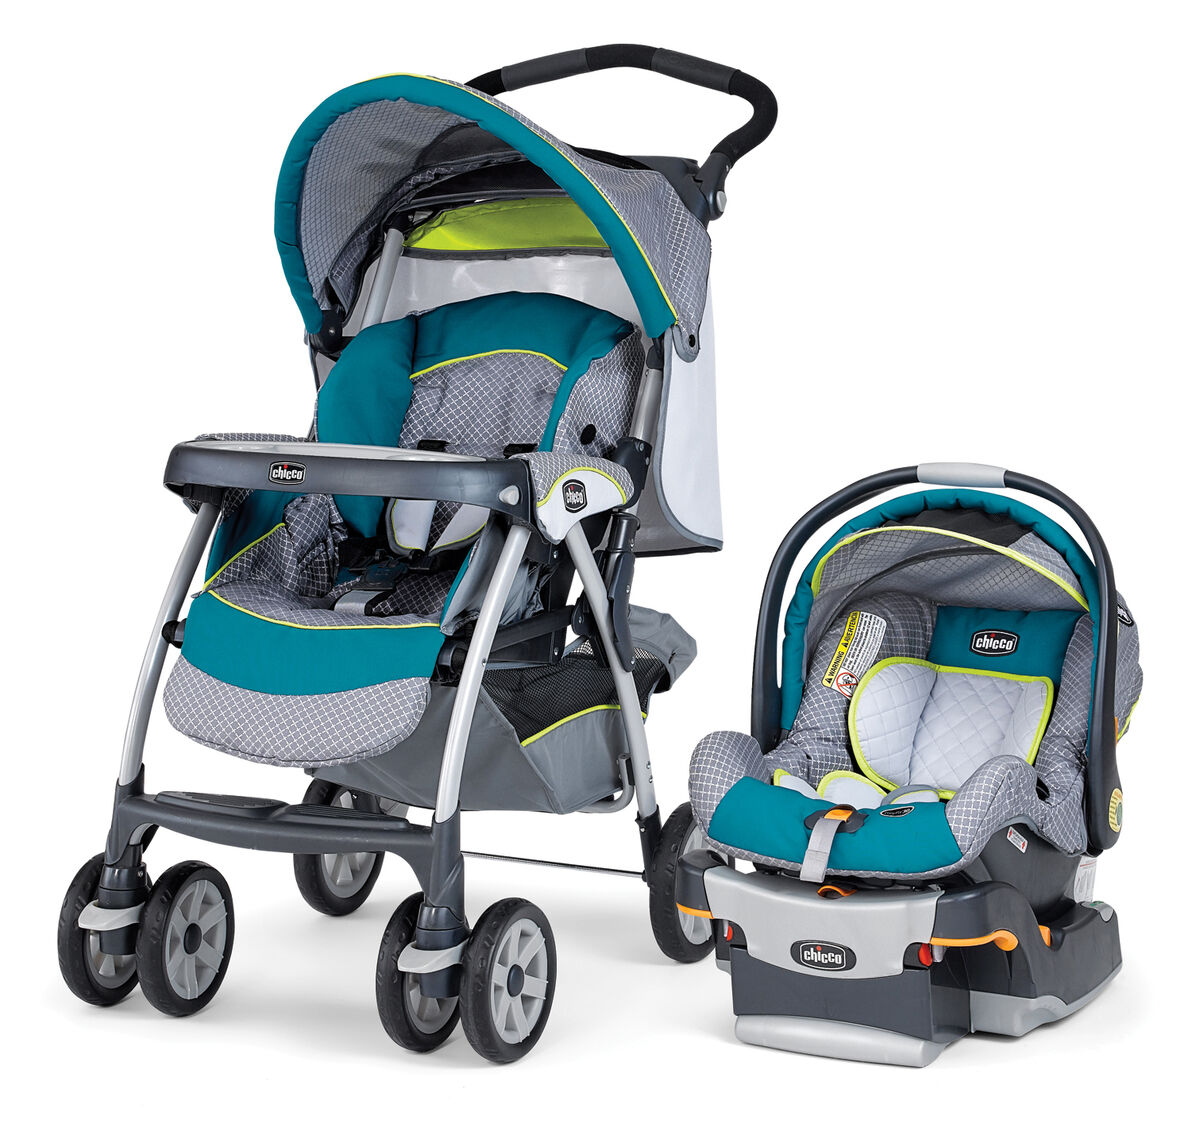 Chicco Lime Green Travel System